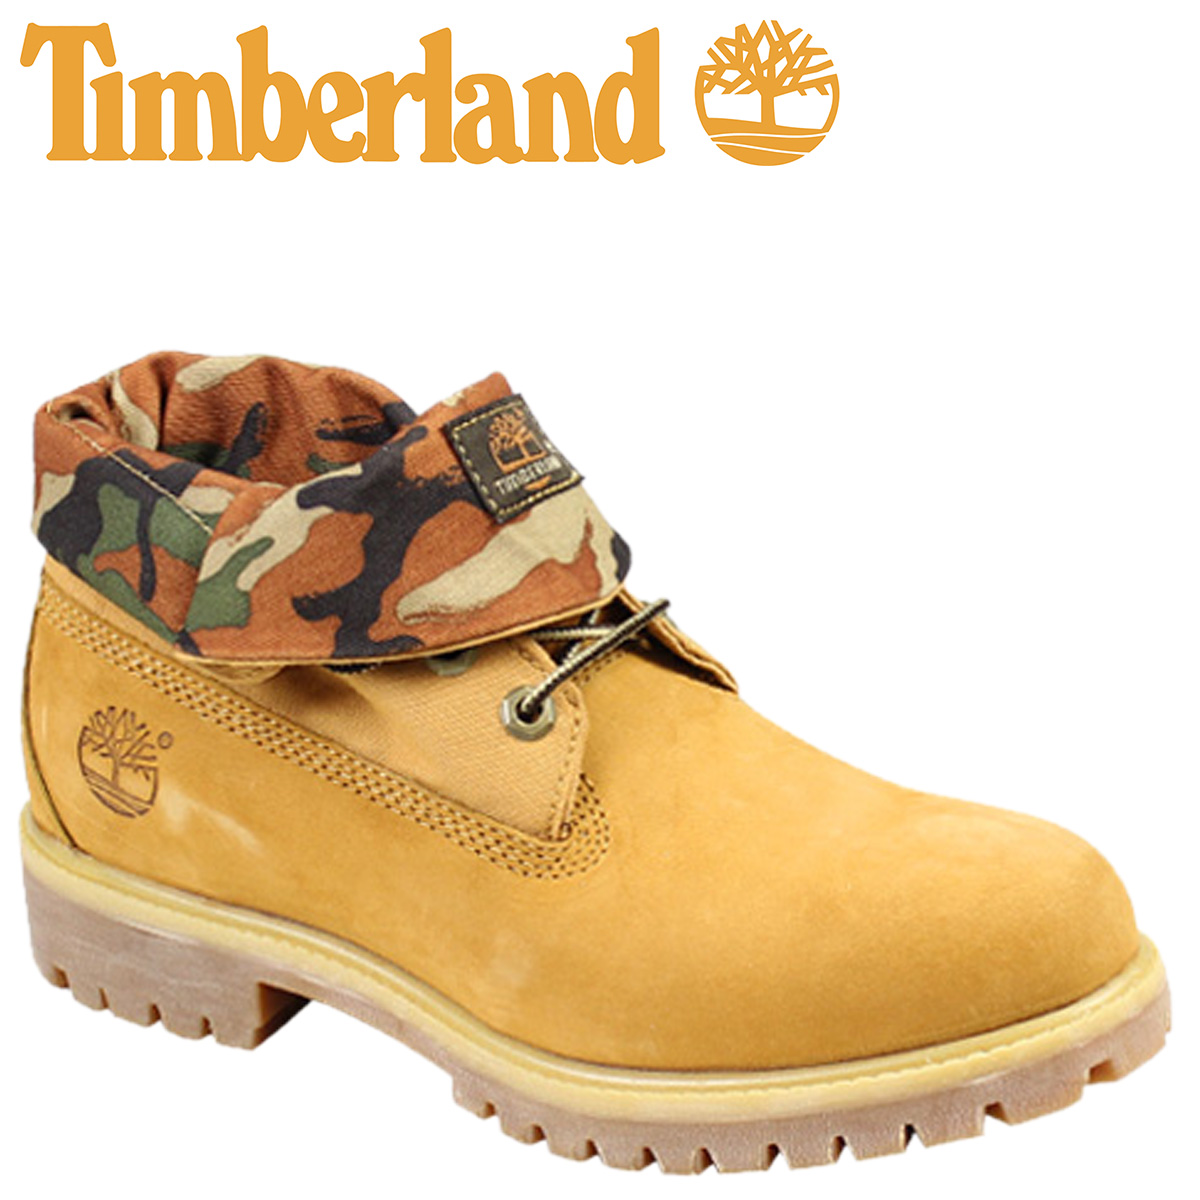 timberland men's roll top camo boots